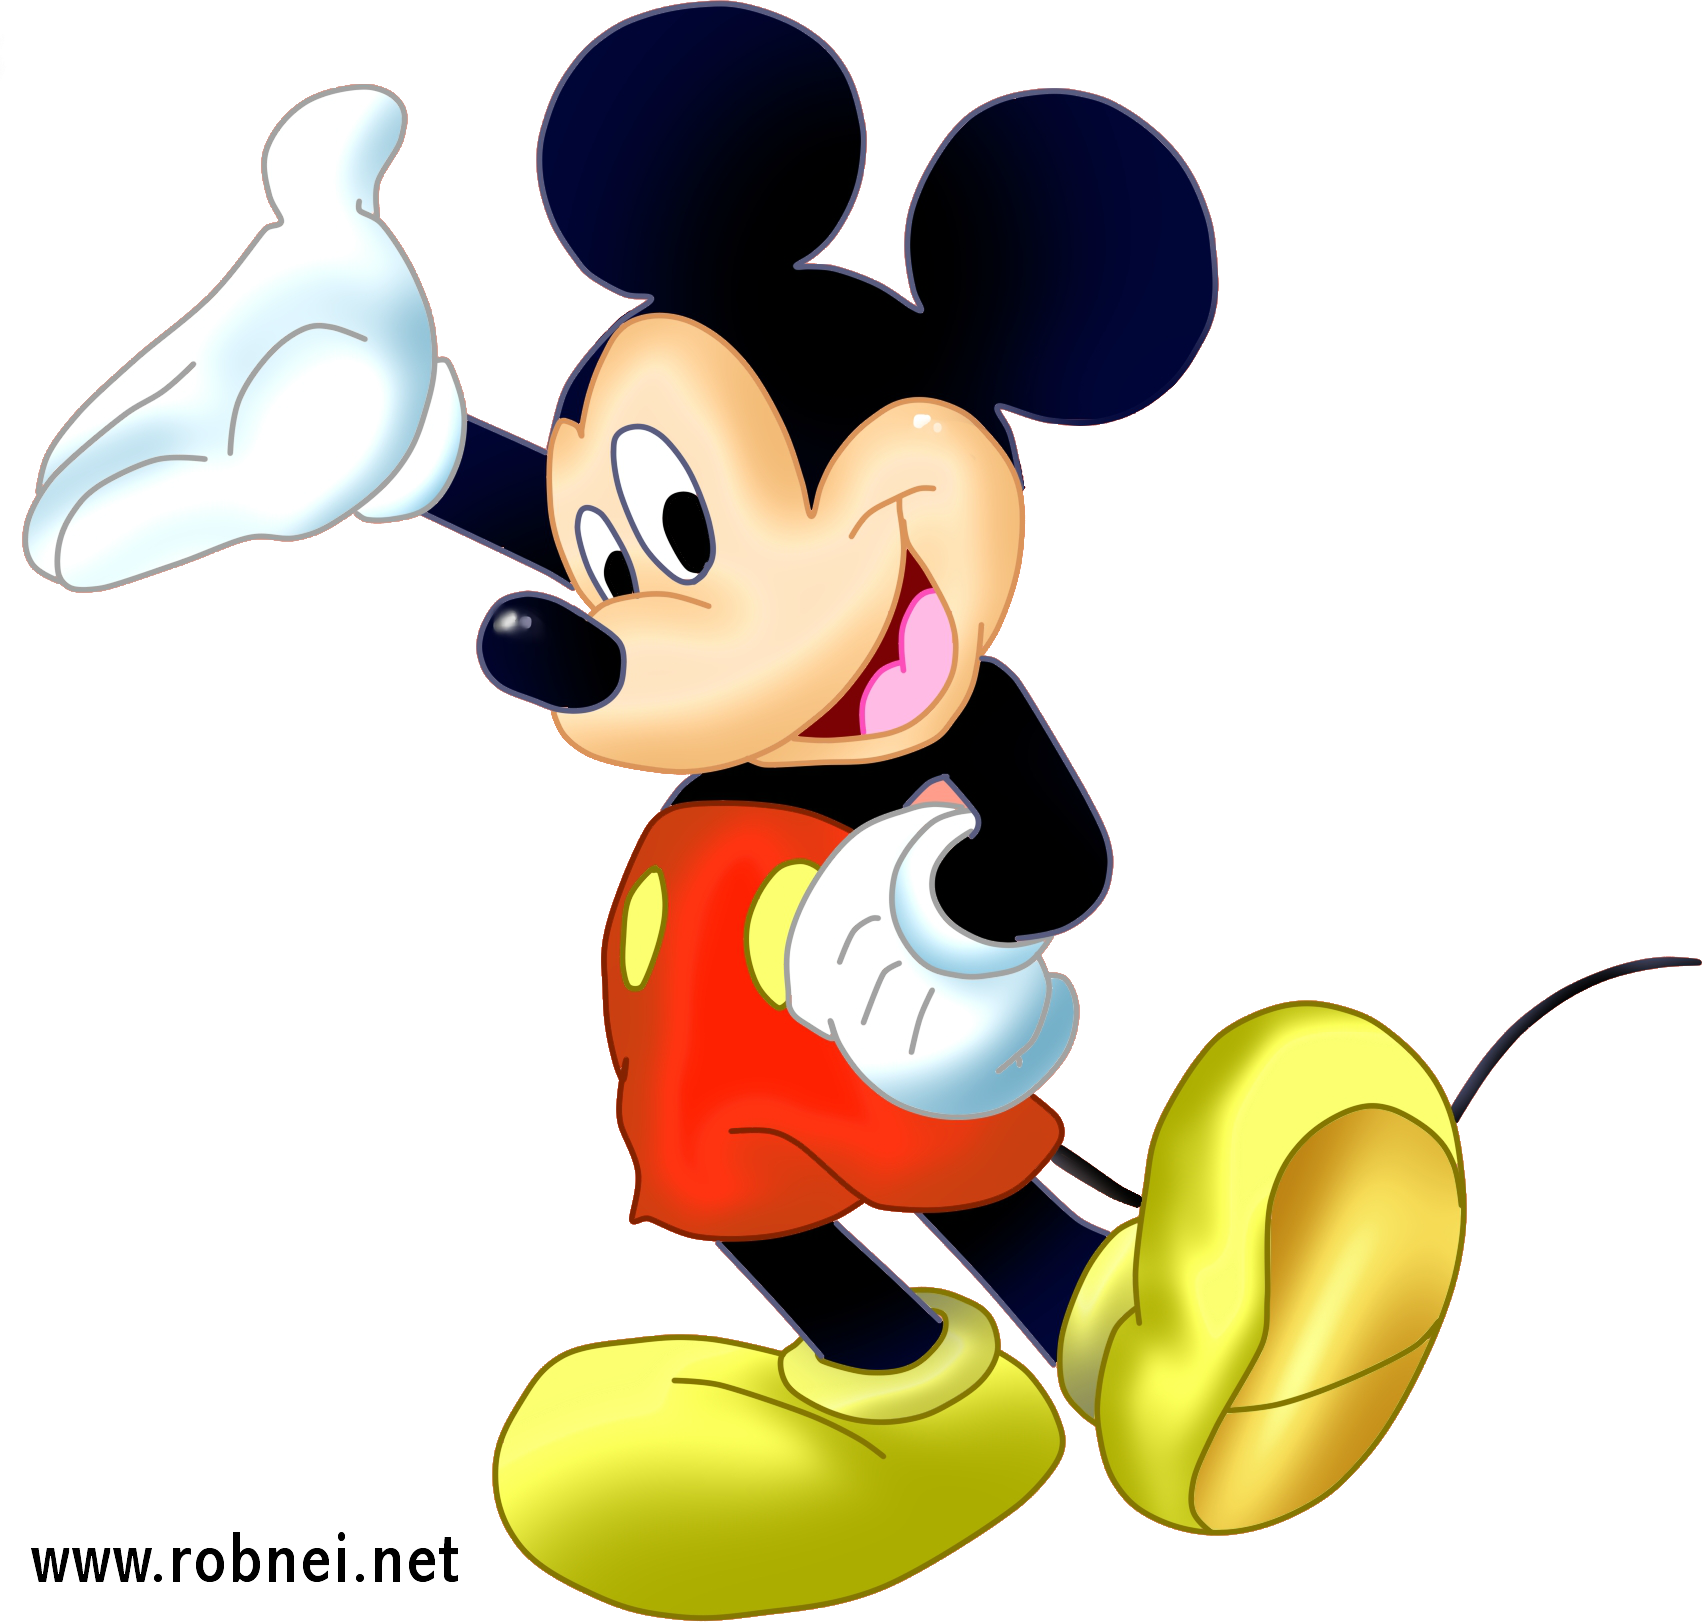 Formato png transparente party. Clipart snow mickey mouse